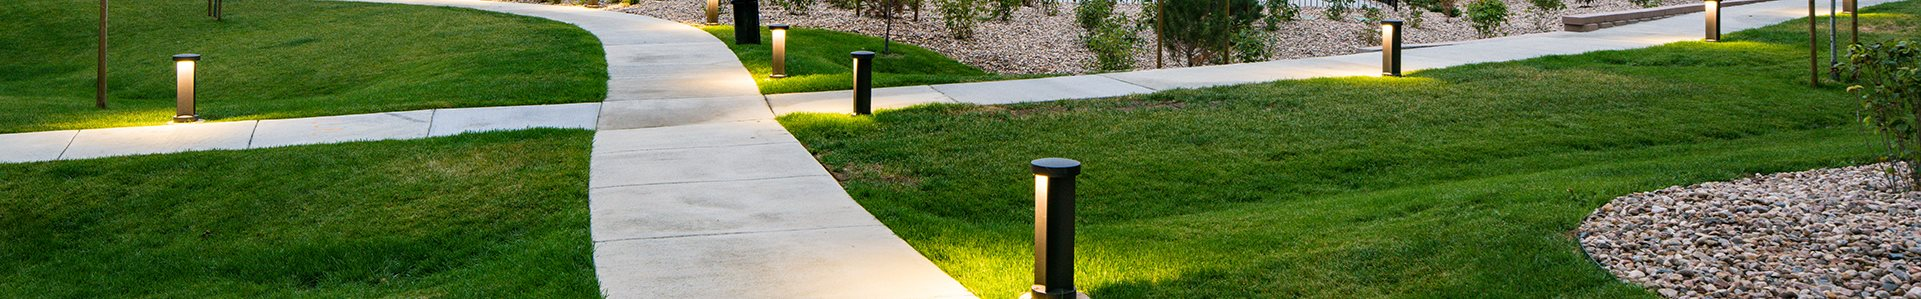 lite pathway Colorado Springs, CO 80916 | Copper Creek Apt Homes